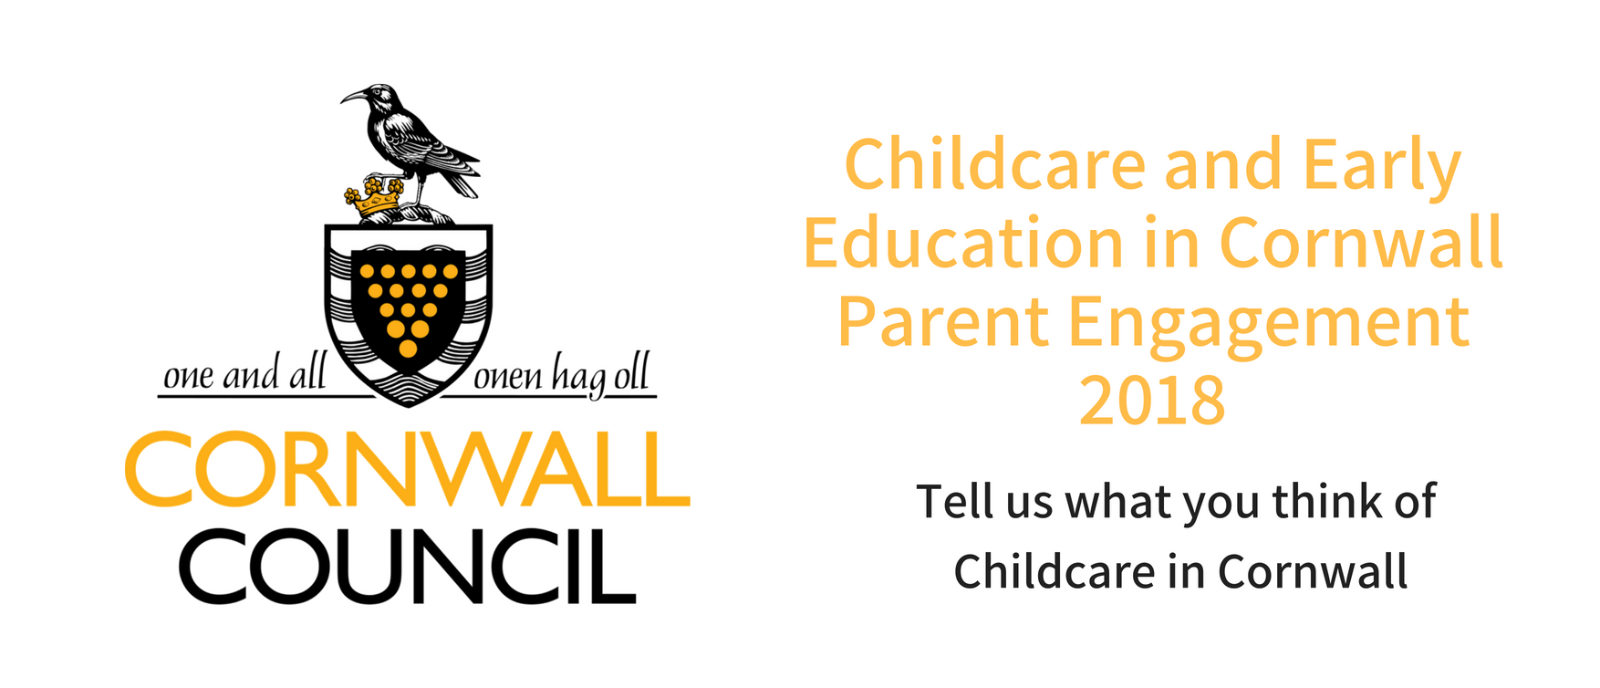 Childcare and Early Education in Cornwall Parent Engagement 2018, Click here to tell us what you think of childcare in cornwall.